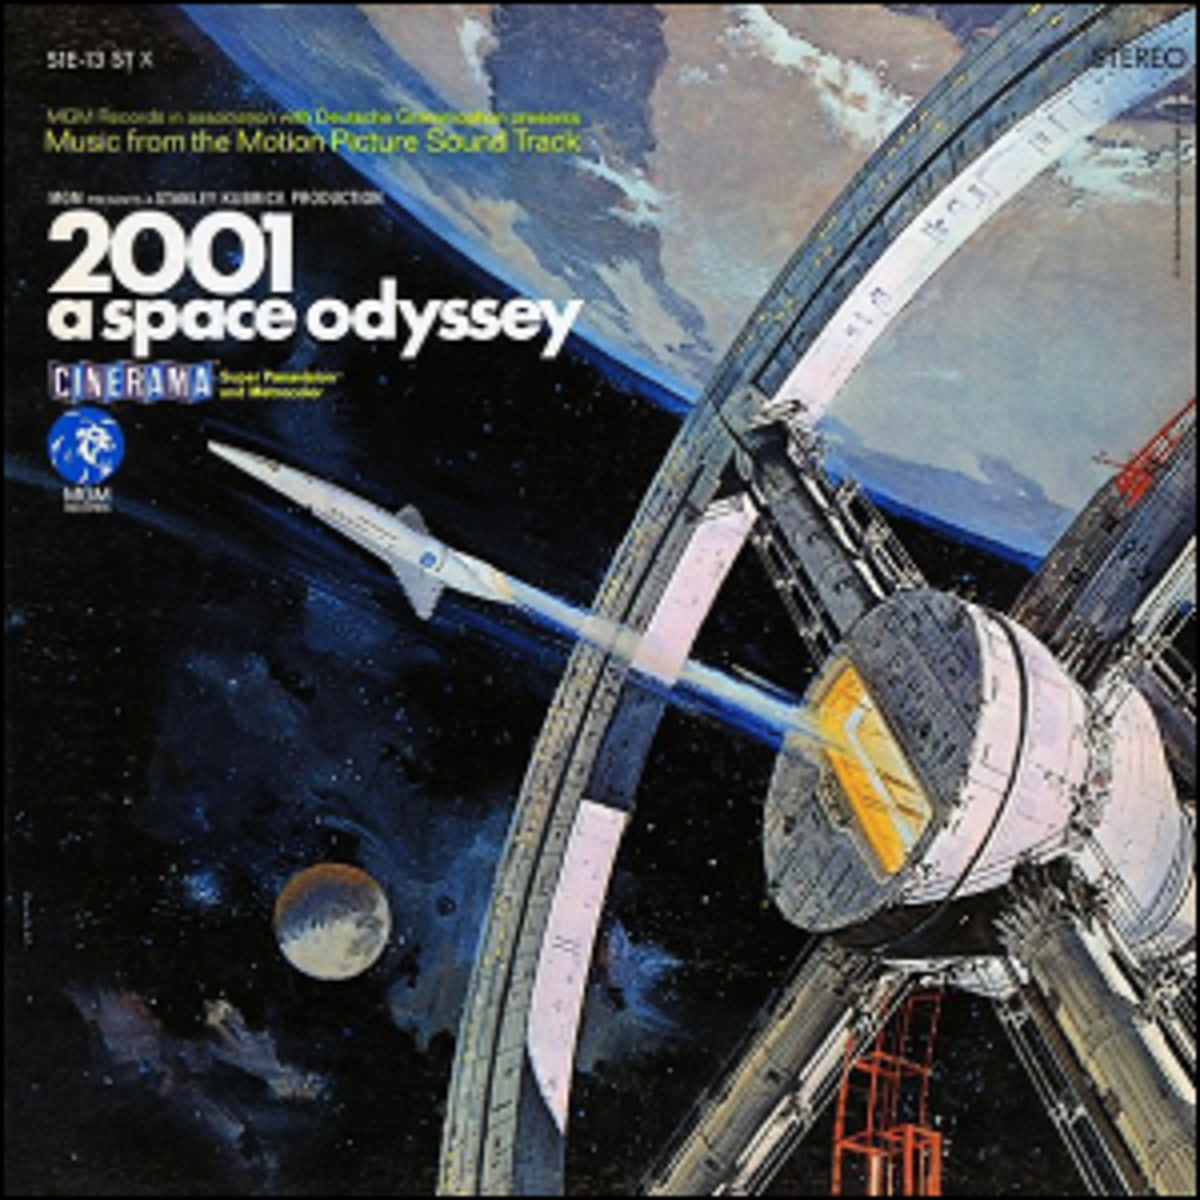 The cover artwork for the movie 2001: A Space Odyssey.